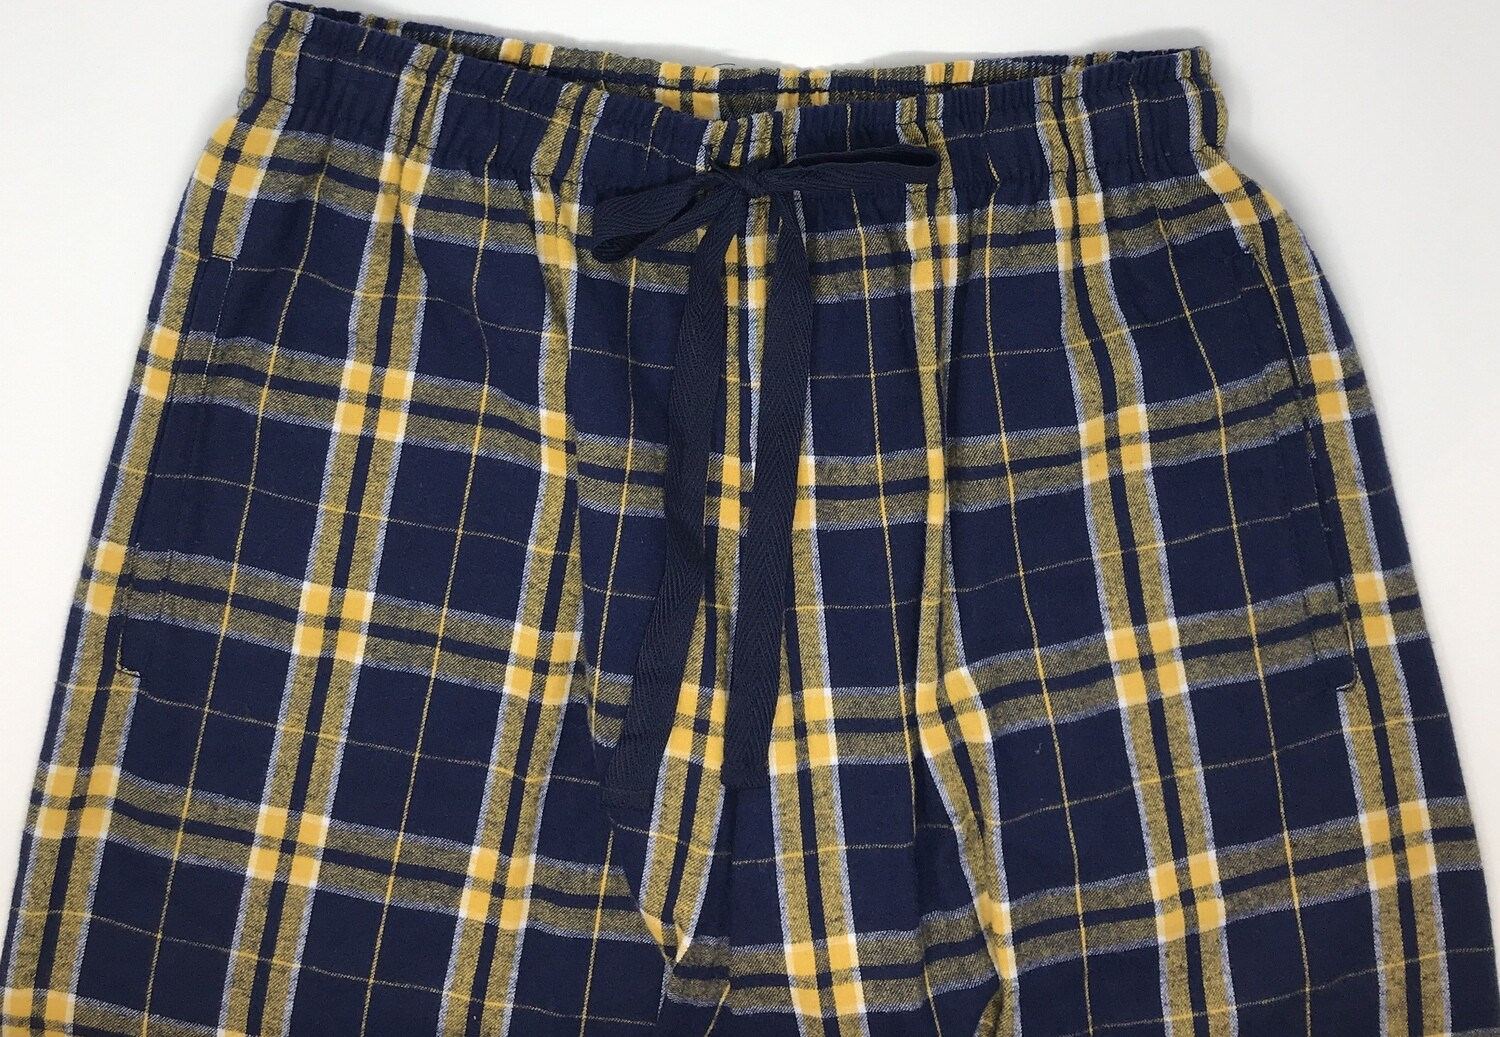 PJ Pants - Flannel Plaid